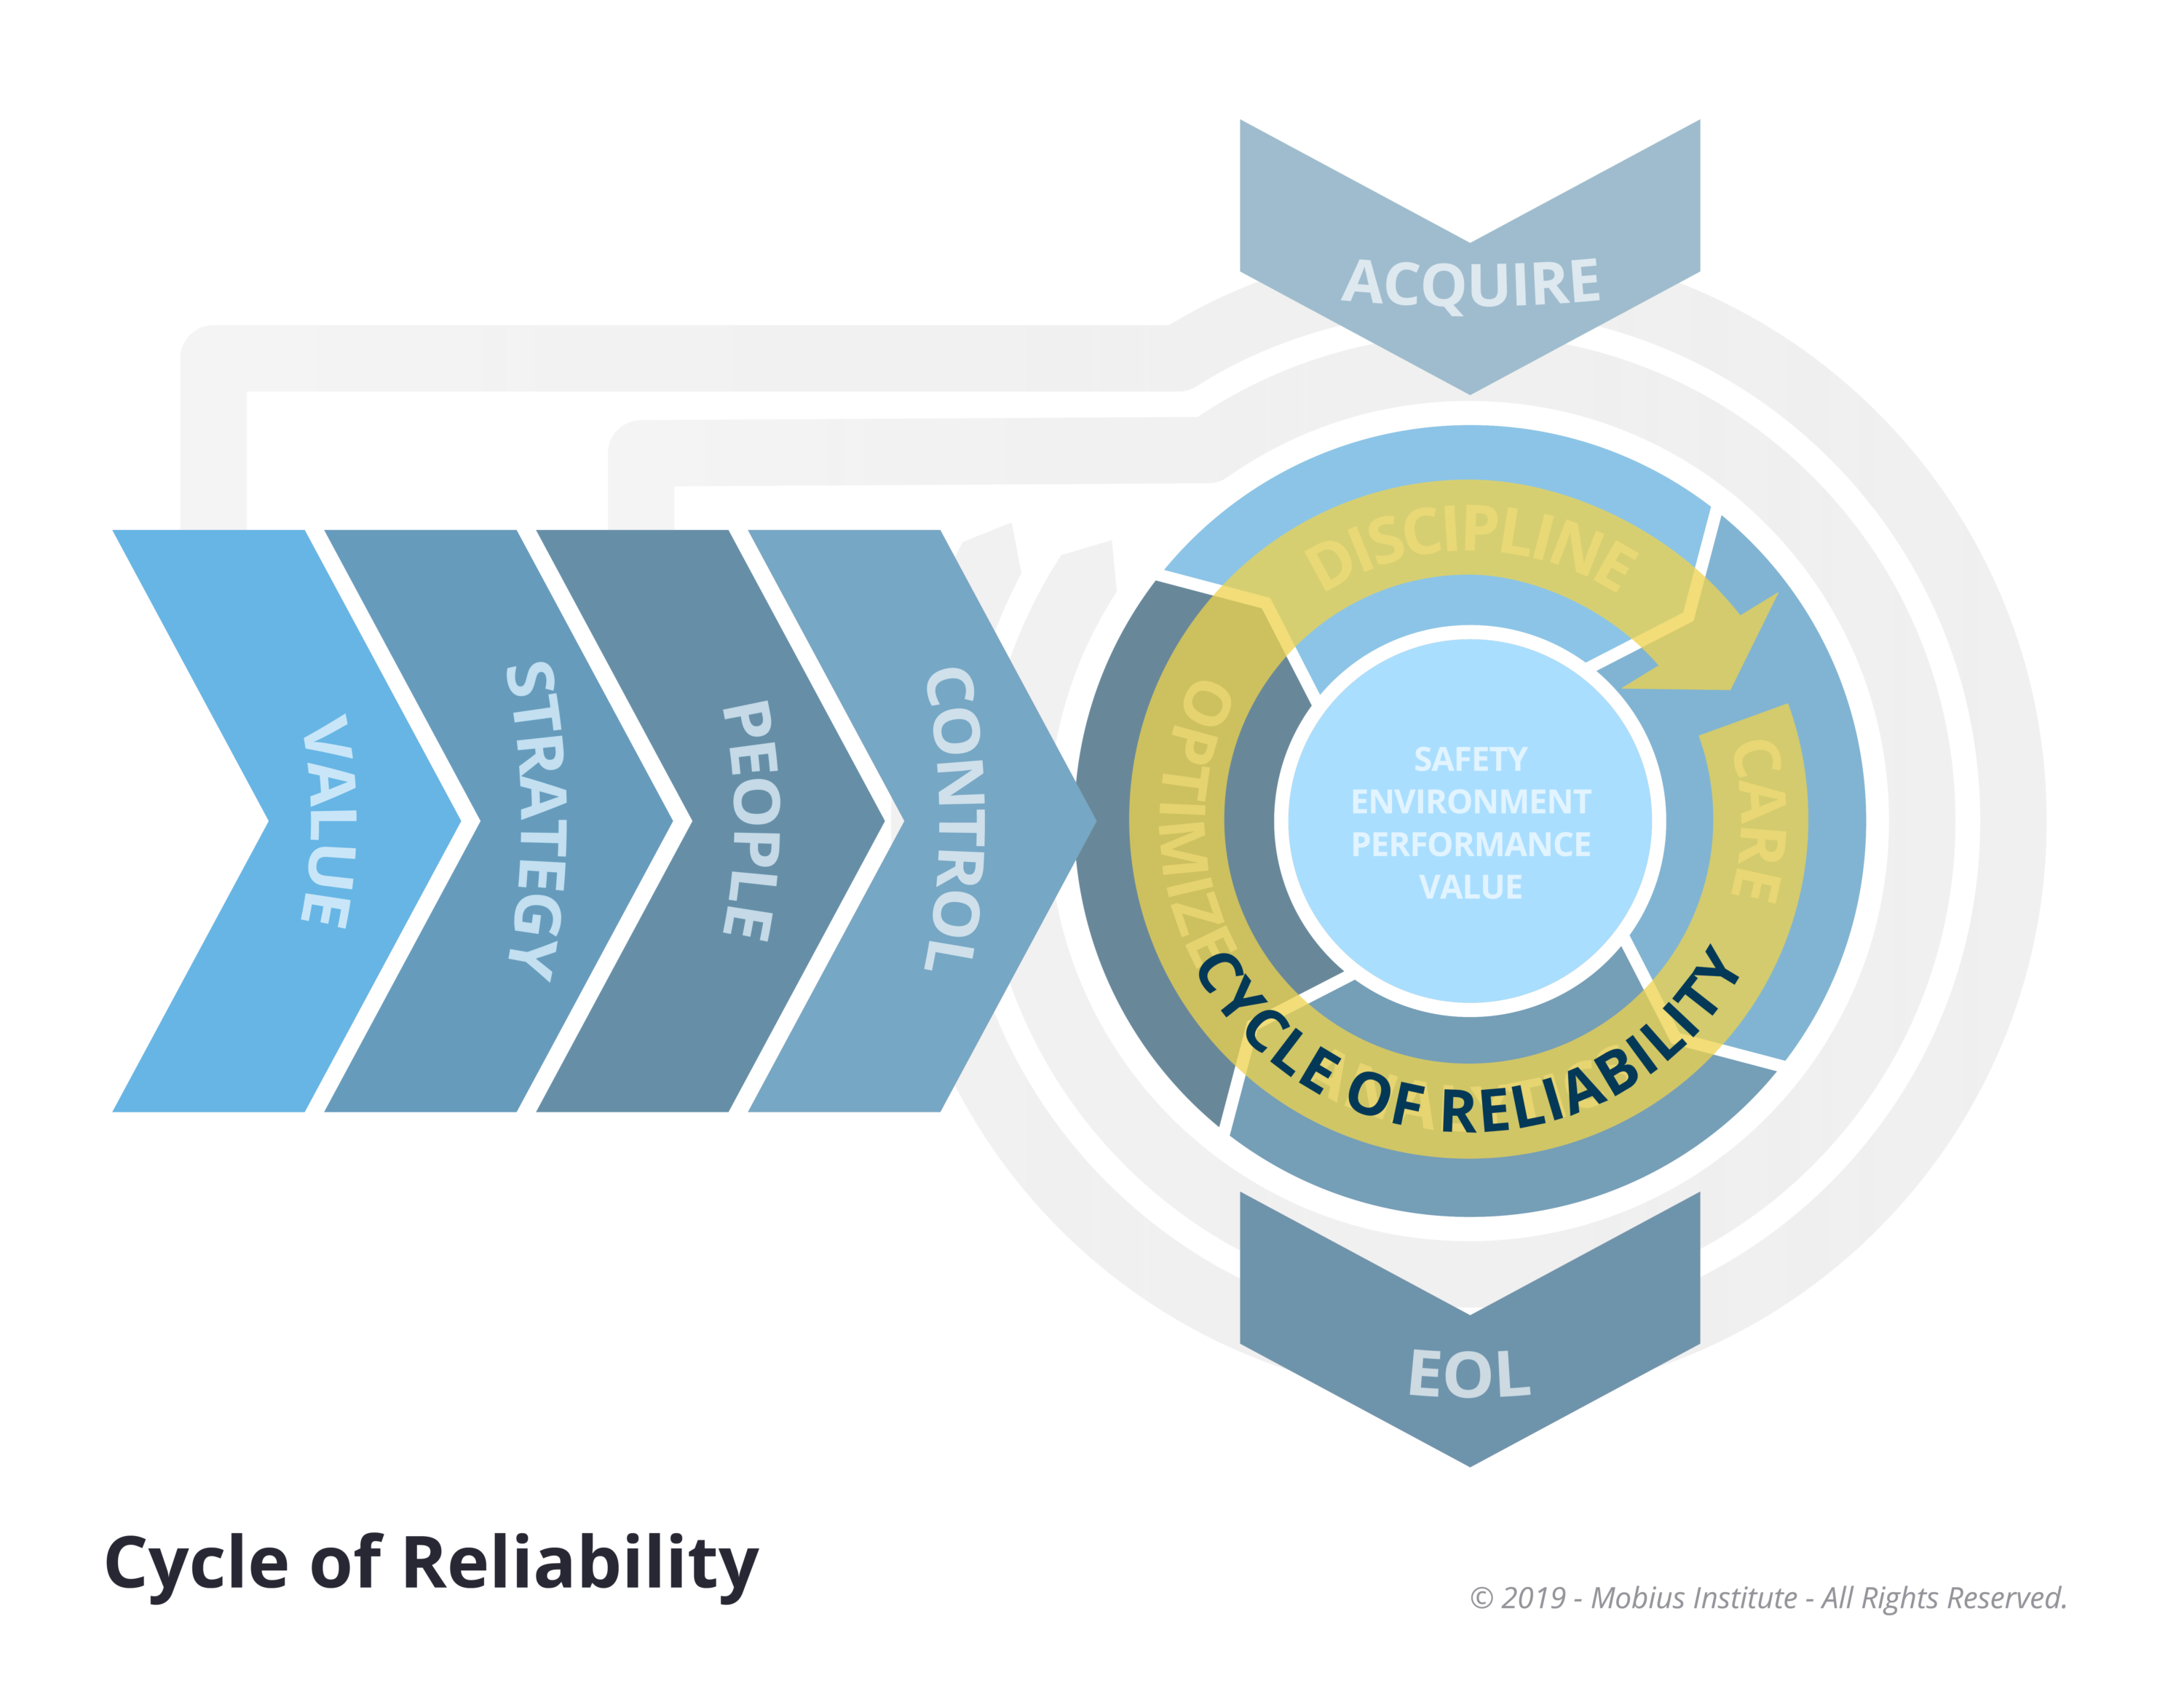 Cycle of Reliability